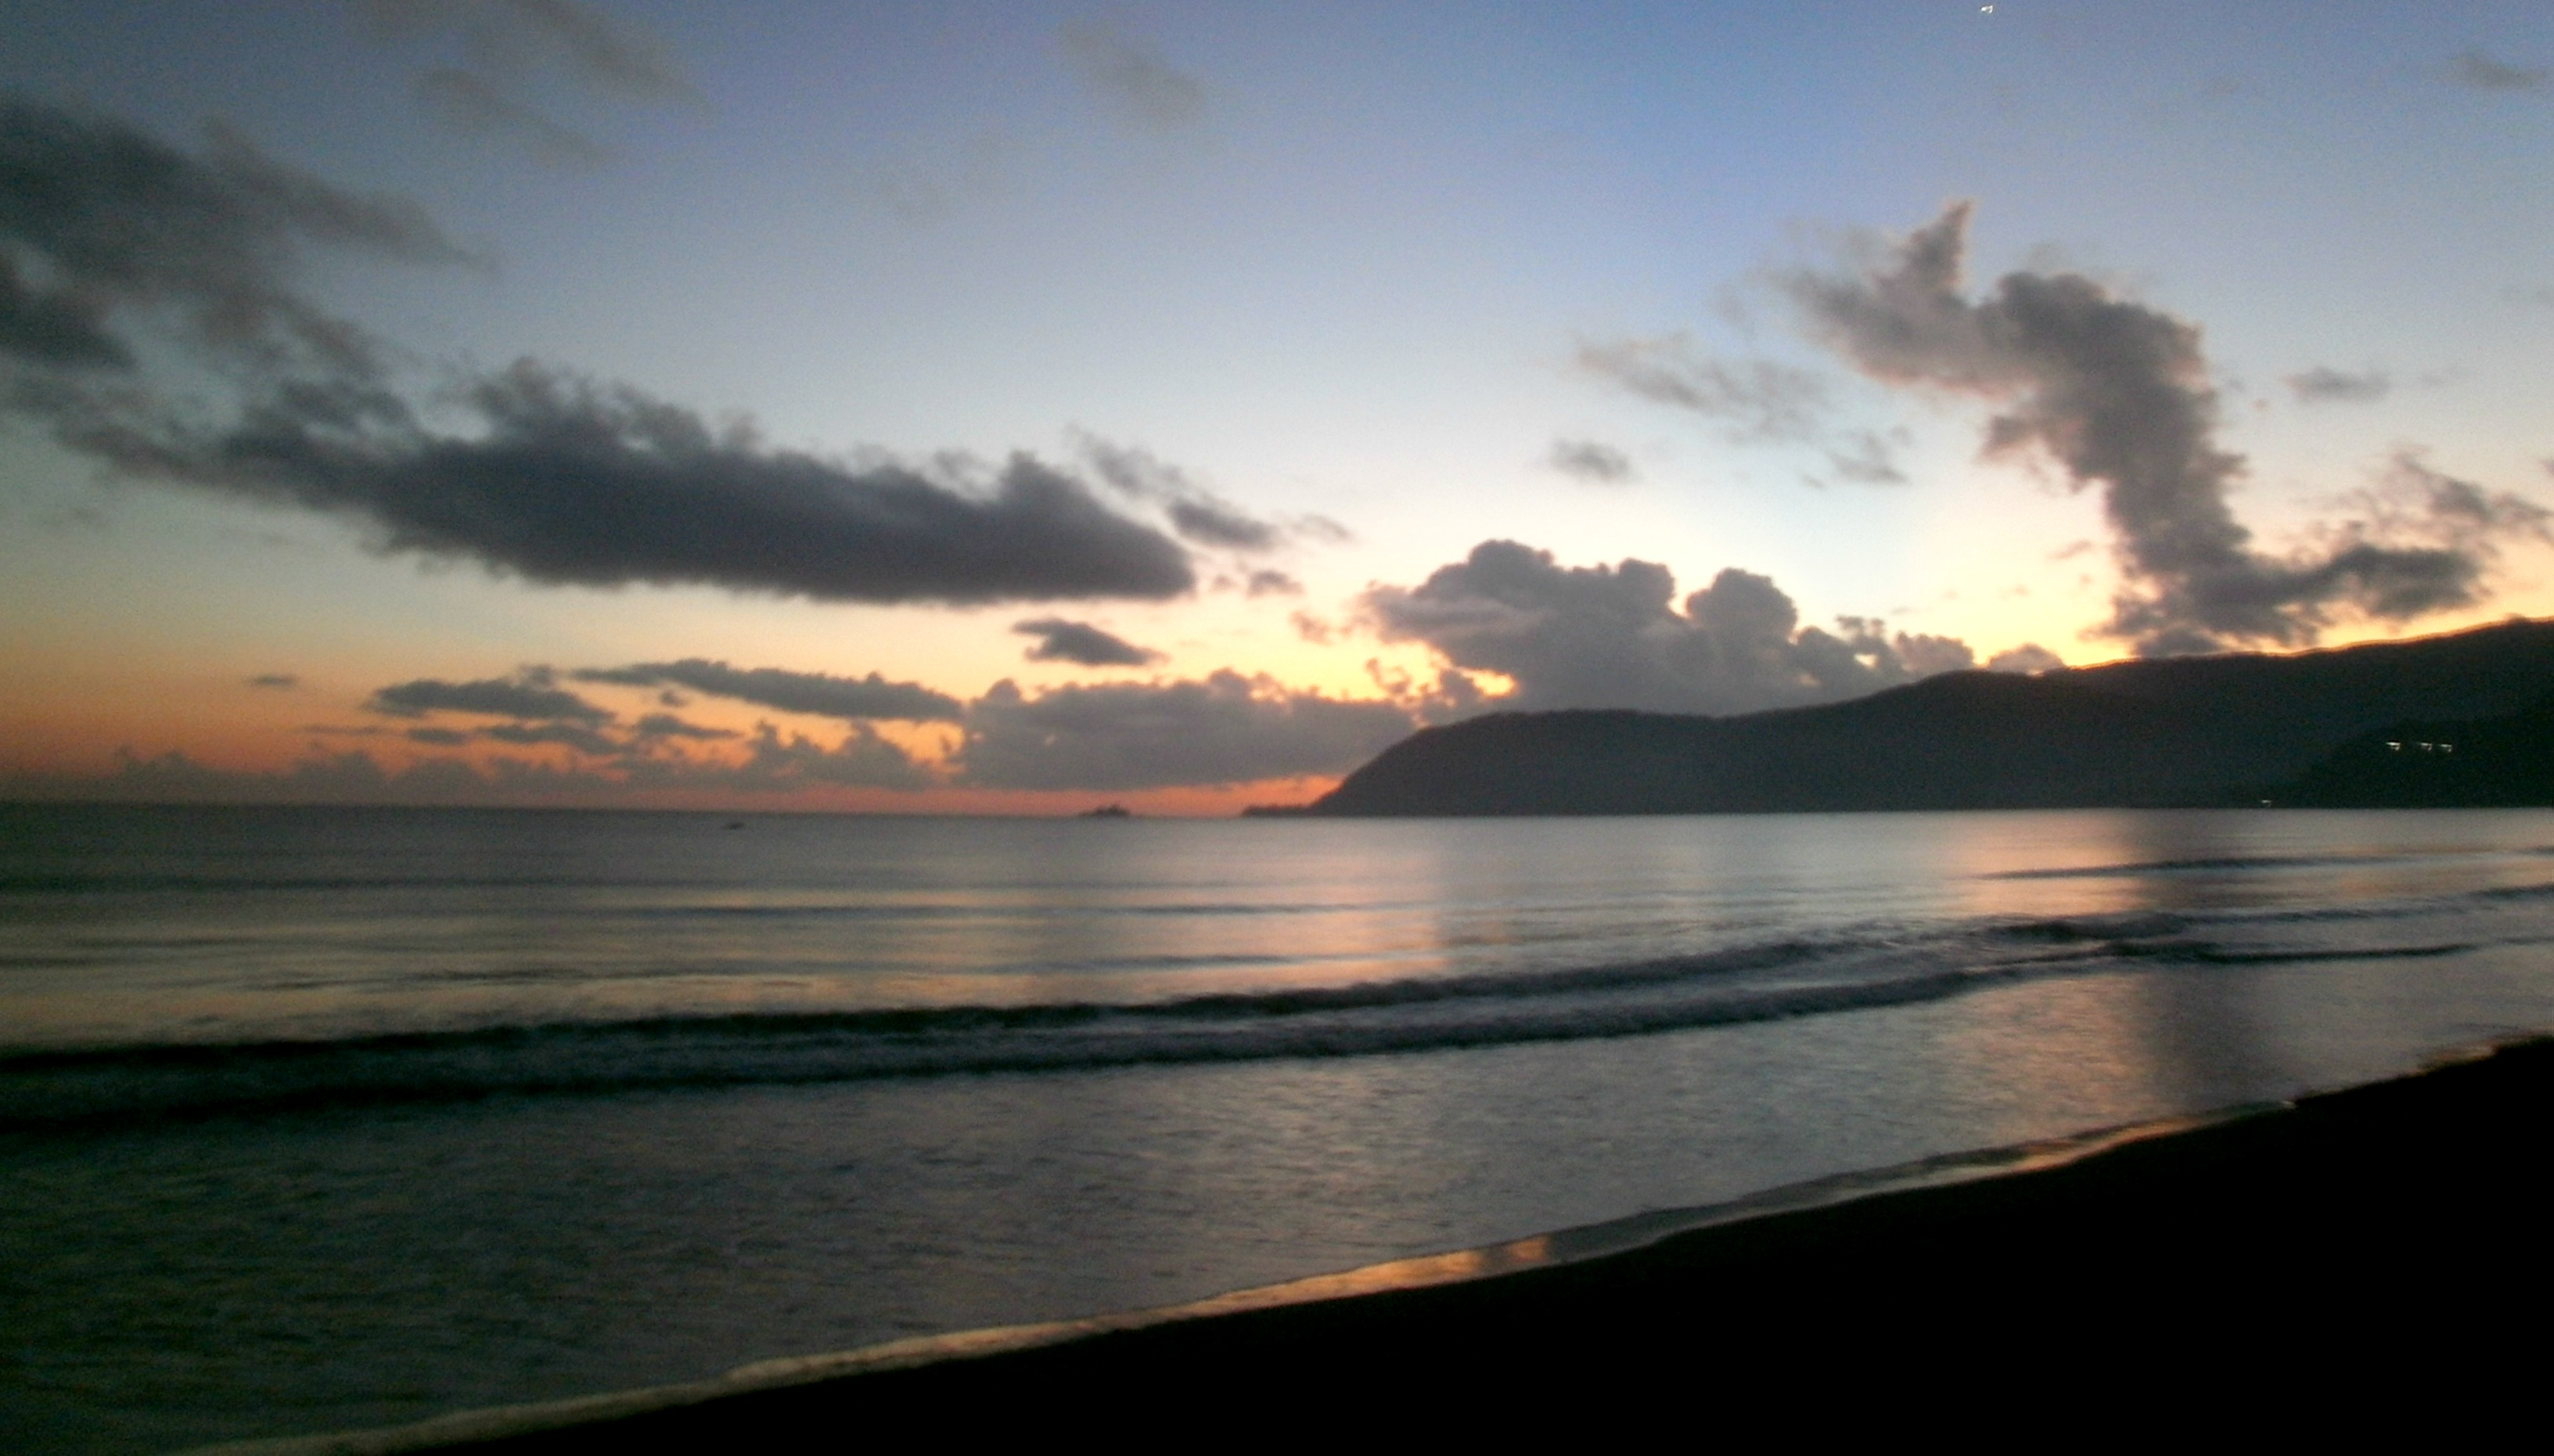 What to do in Baler; D.I. Y. Baler; What to do in Baler besides surfing; Baler itinerary;